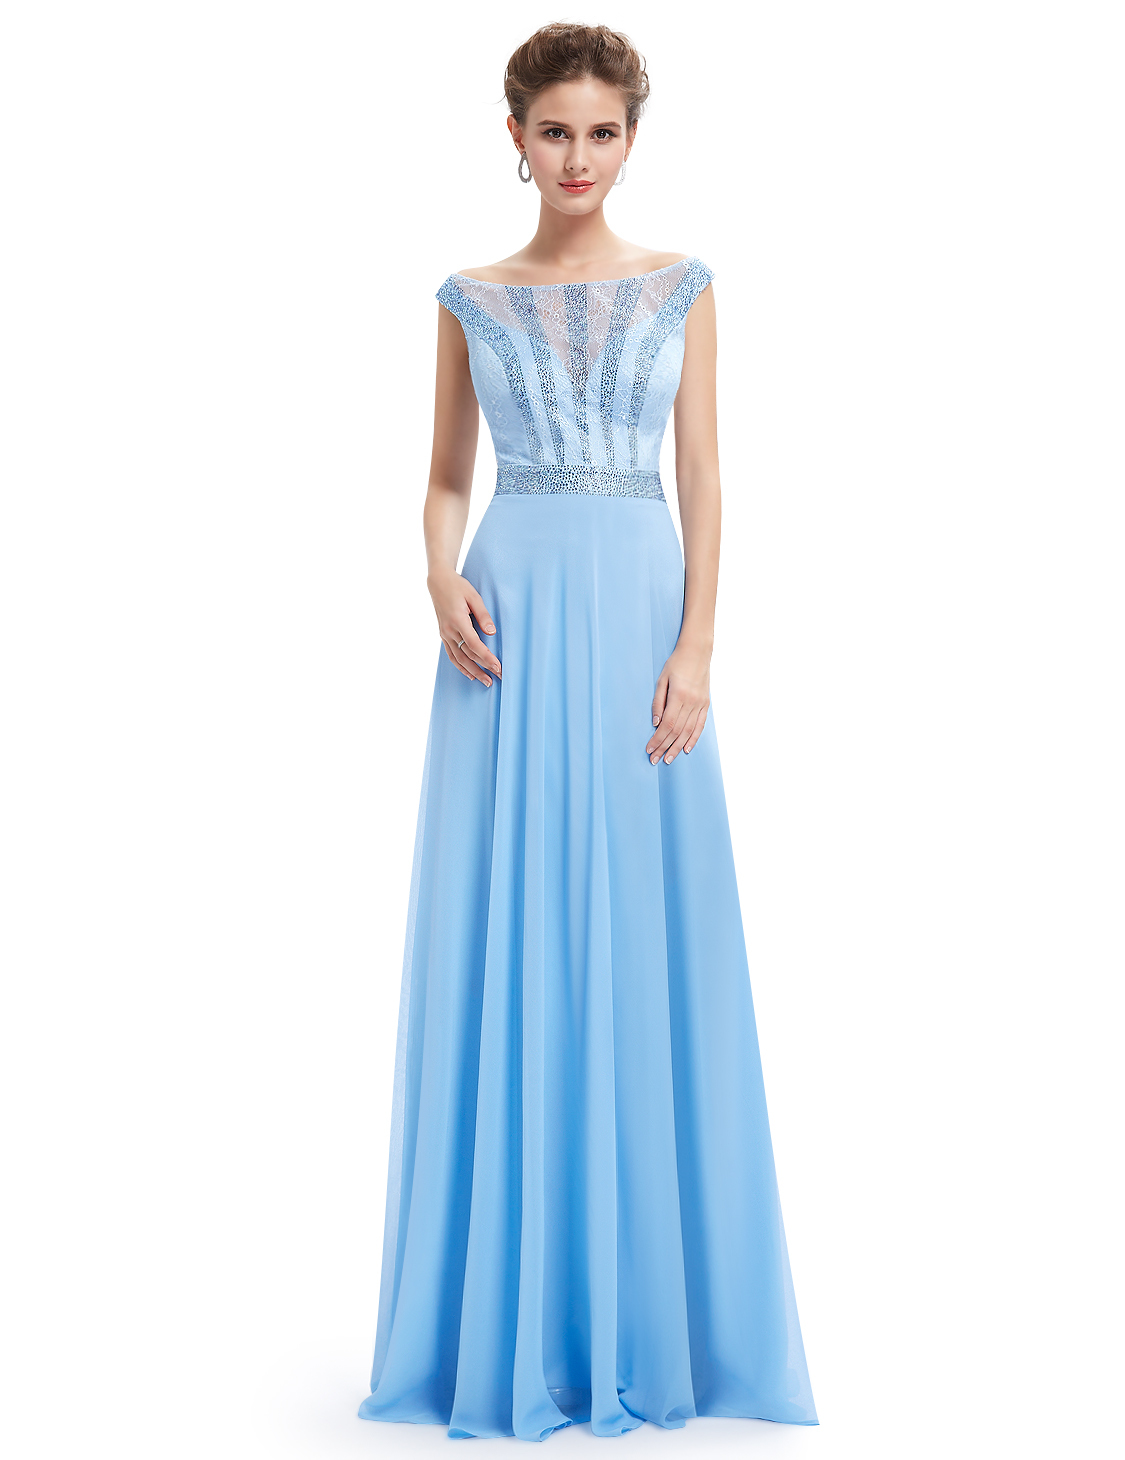 Light Blue Lace Illusion Neckline Chiffon Prom Dress With Beaded Bodice - $115.00